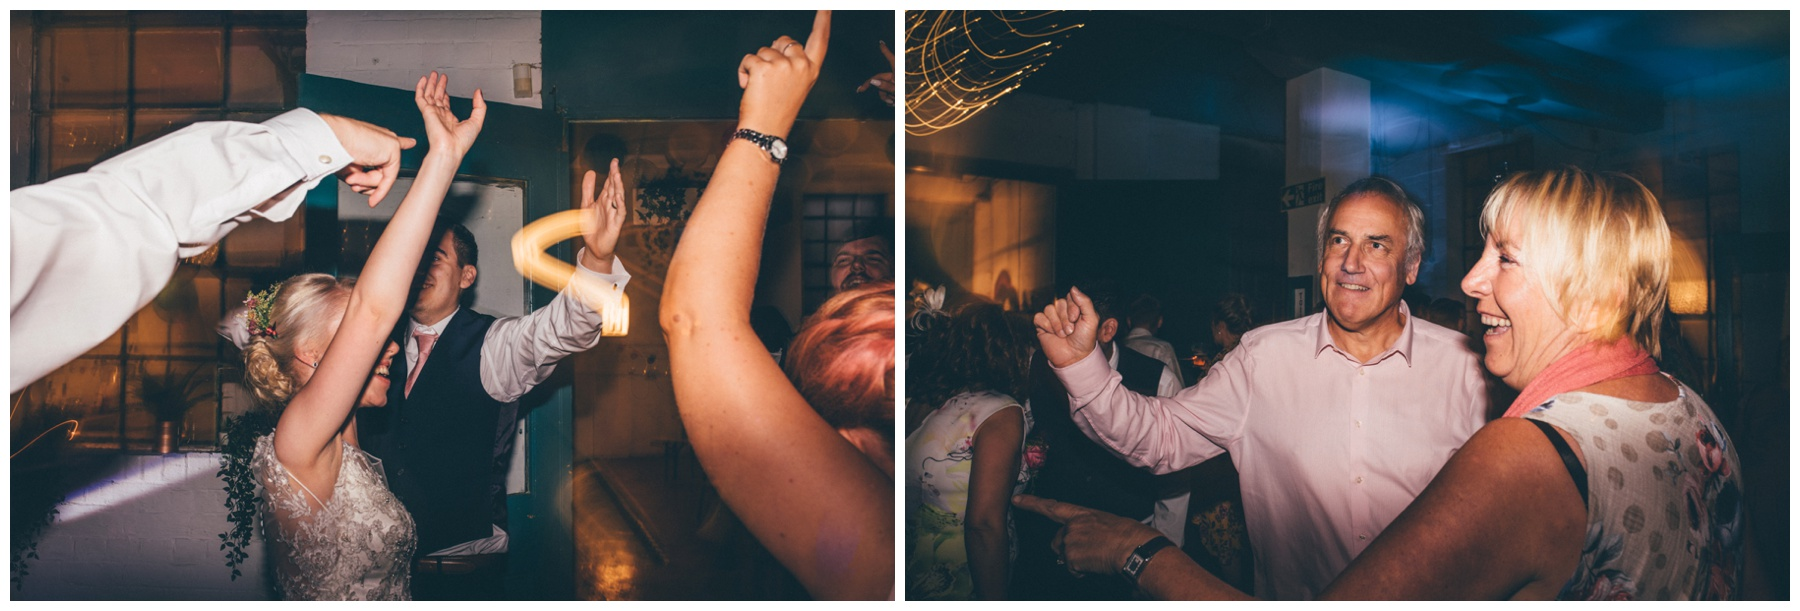 Guests dance at The Hide, a cool, Urban wedding venue in Sheffield.